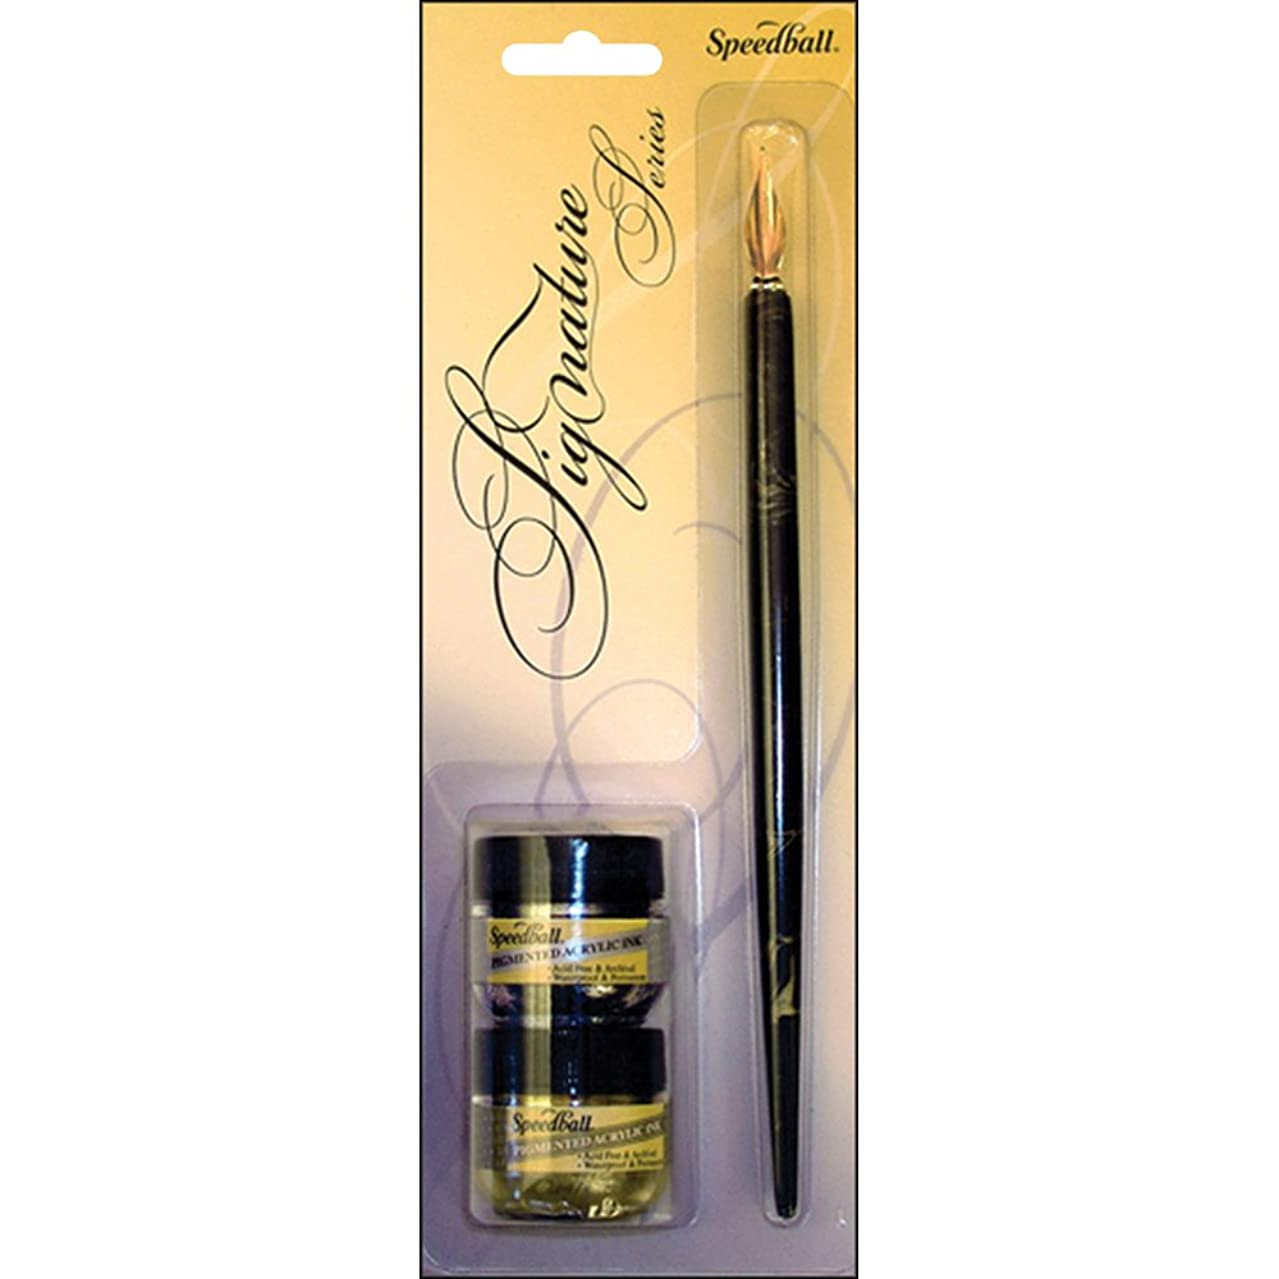 Speedball Signature Series Calligraphy Set, Gold and Silver